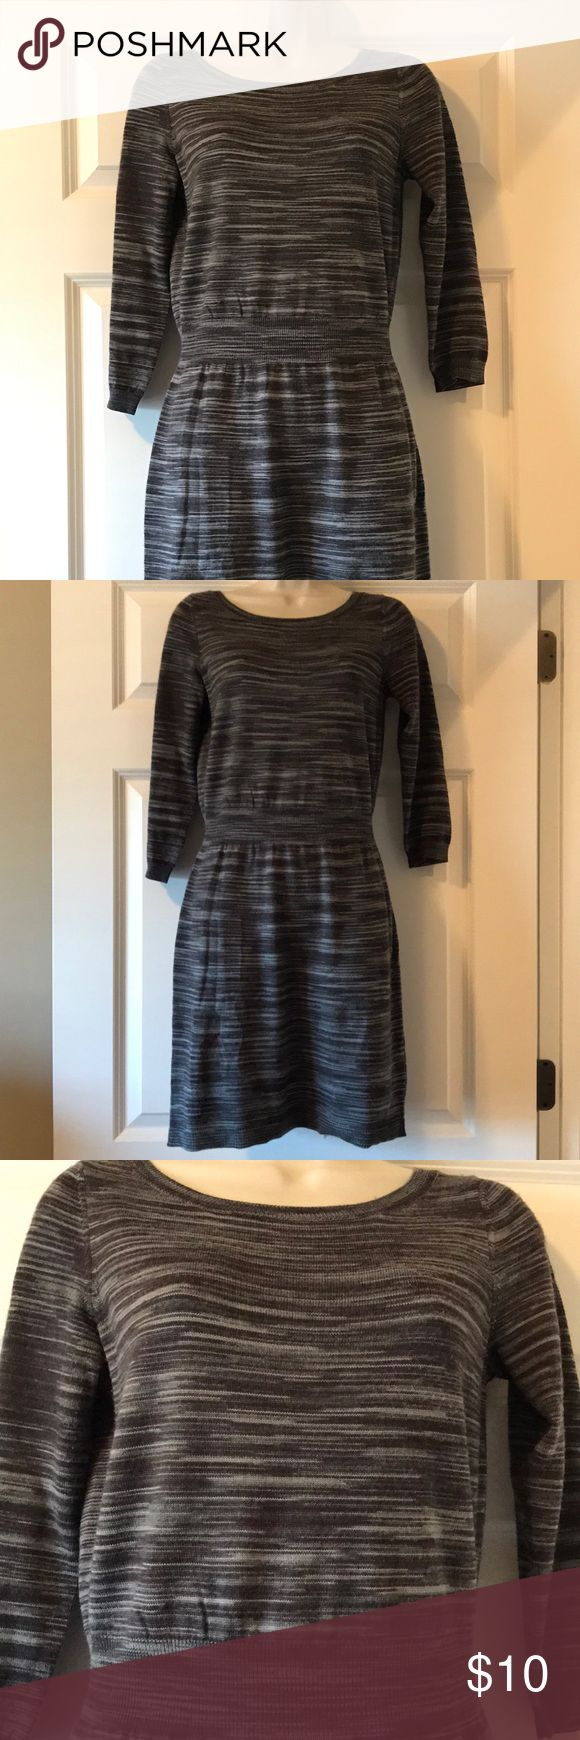 Sweater dress LOFT petite sweater dress. Looks great with a pair of tall brown boots LOFT Sweaters